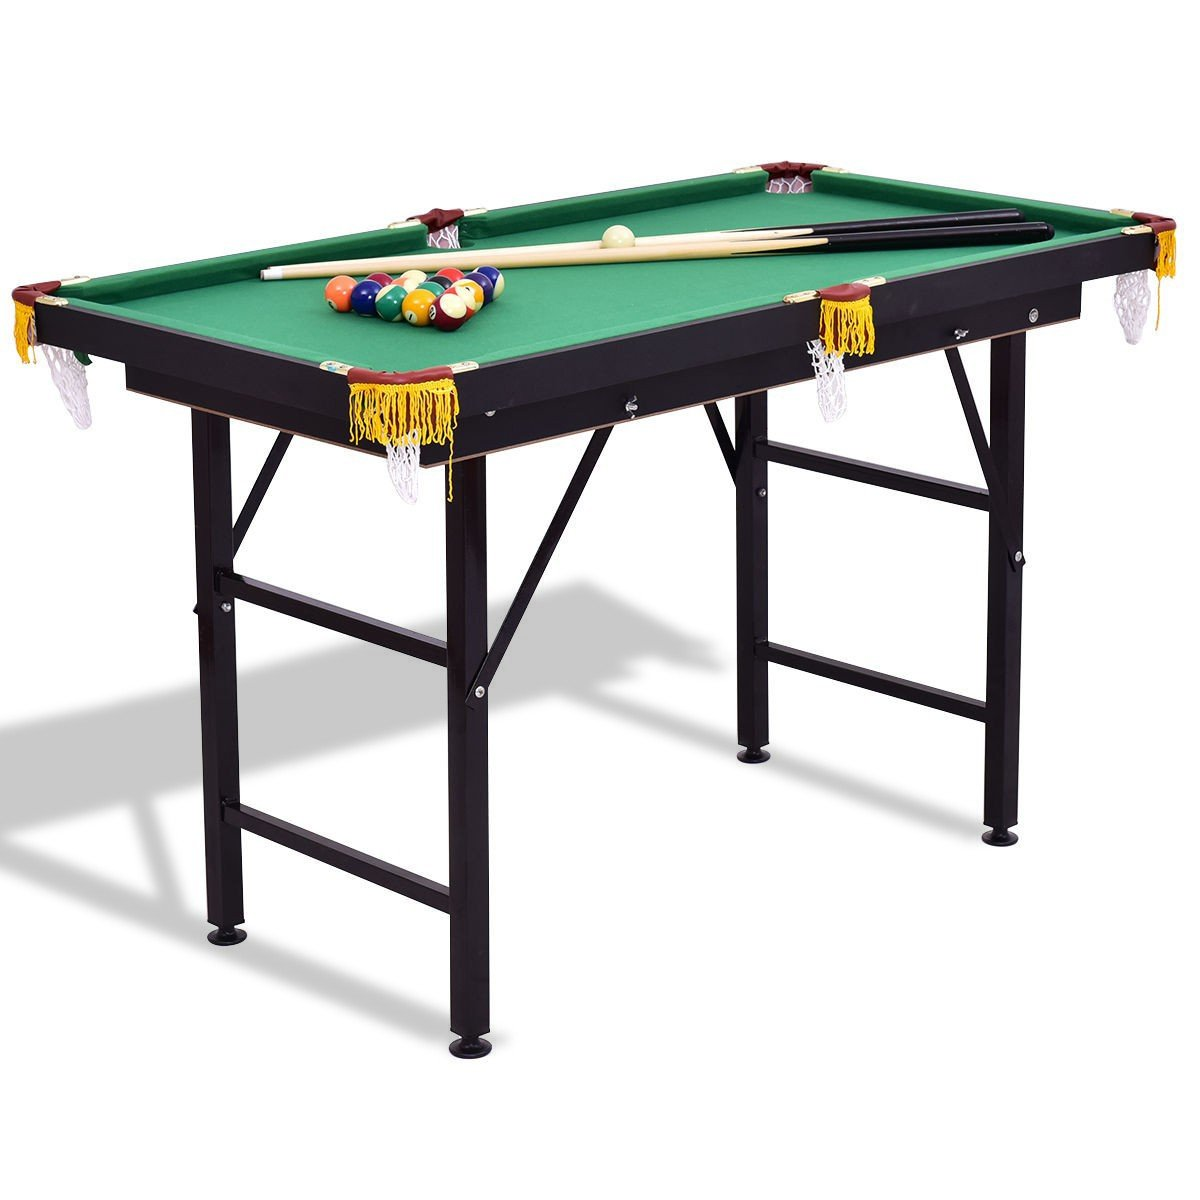 Awesome Amazon Com Beuniquetoday 47 Billiard Pool Table Full Game Home Interior And Landscaping Ponolsignezvosmurscom